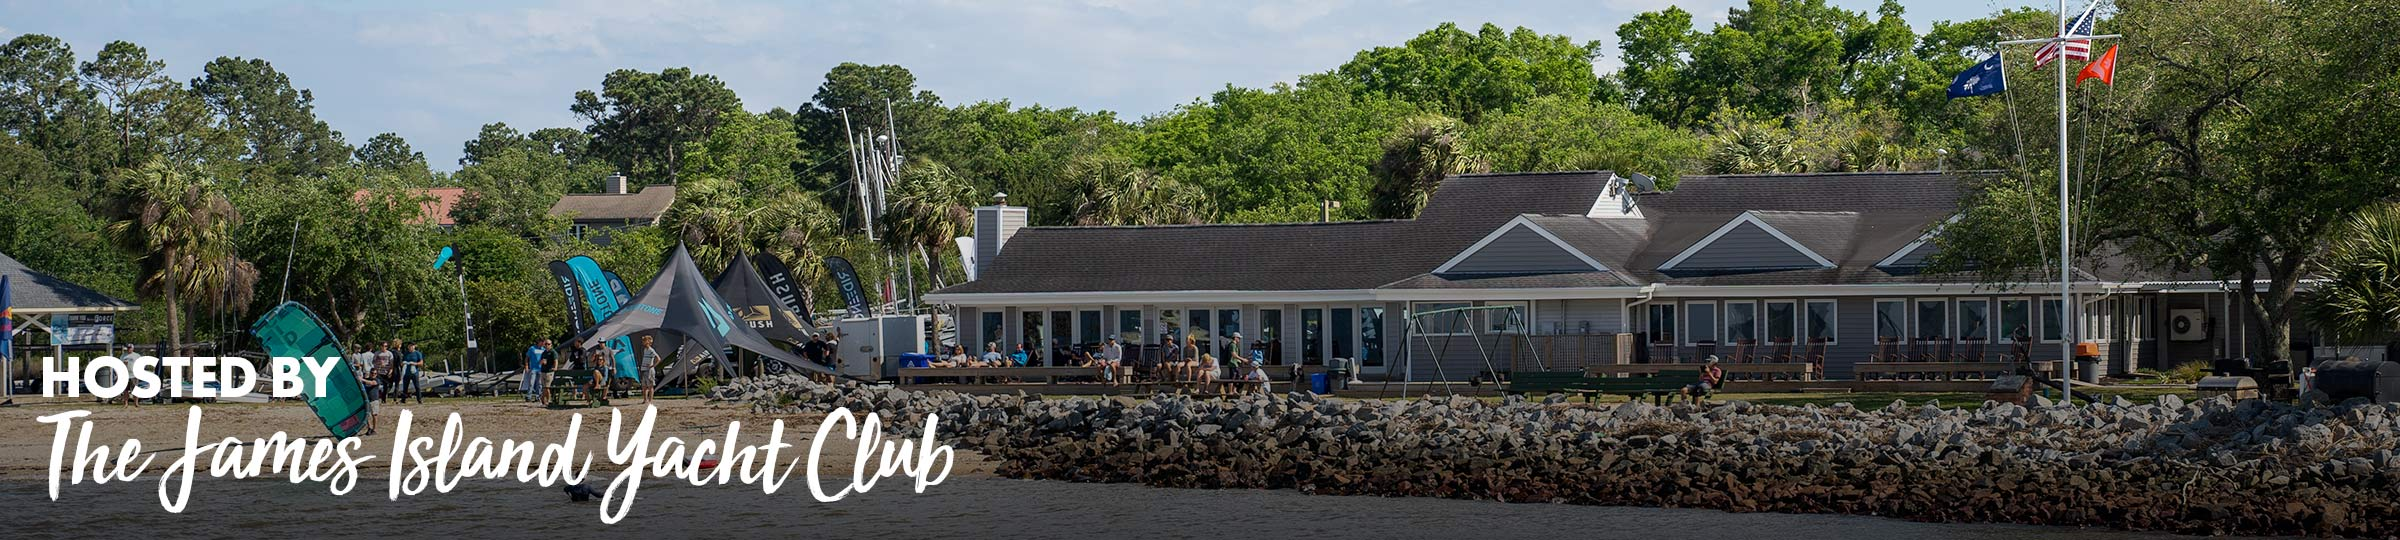 James Island Yacht Club